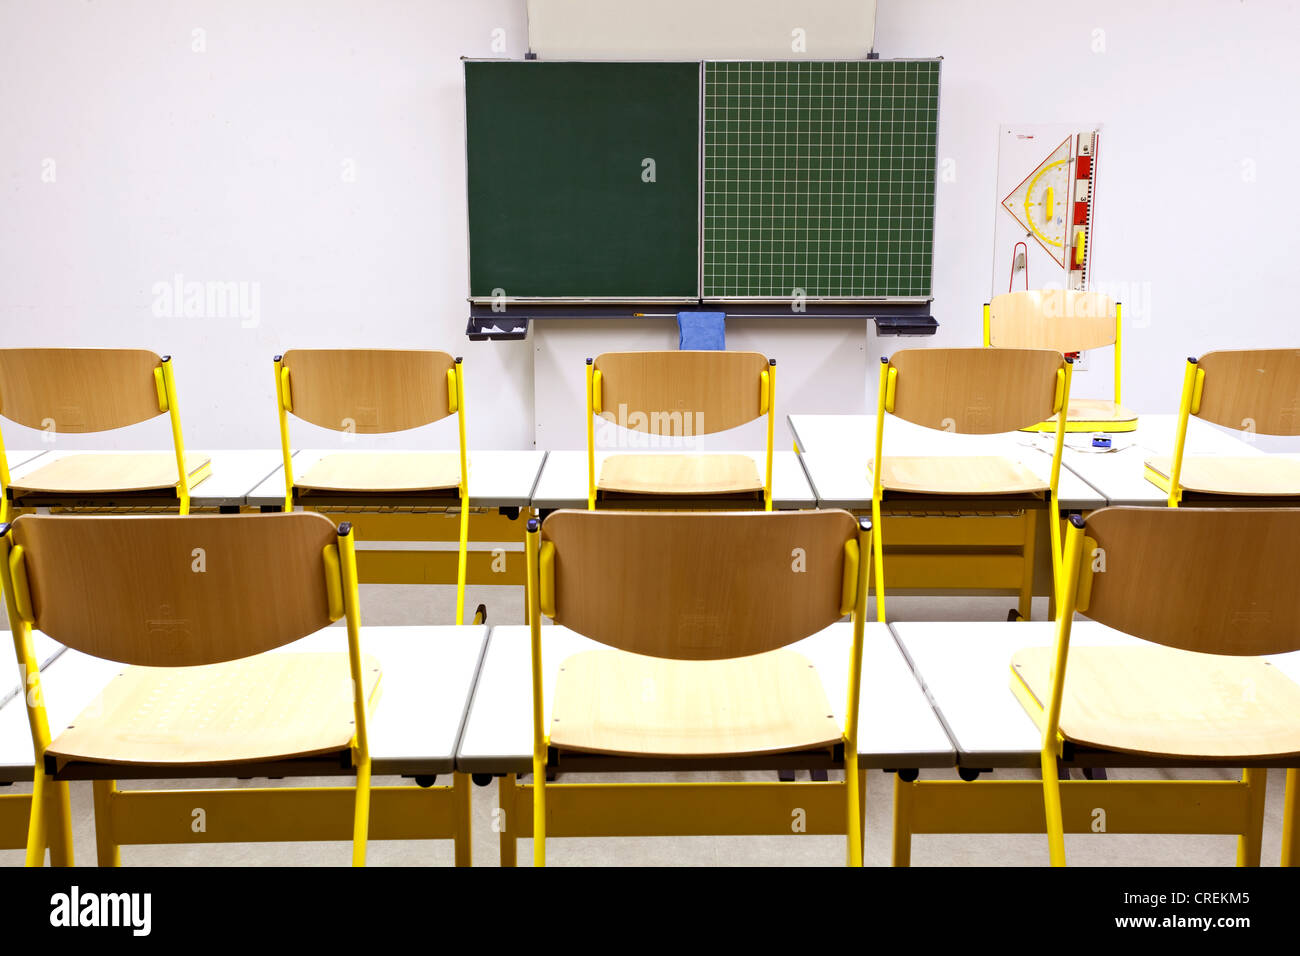 Chairs on desks in a classroom in a school in Straubing, Bavaria, Germany, Europe - Stock Image